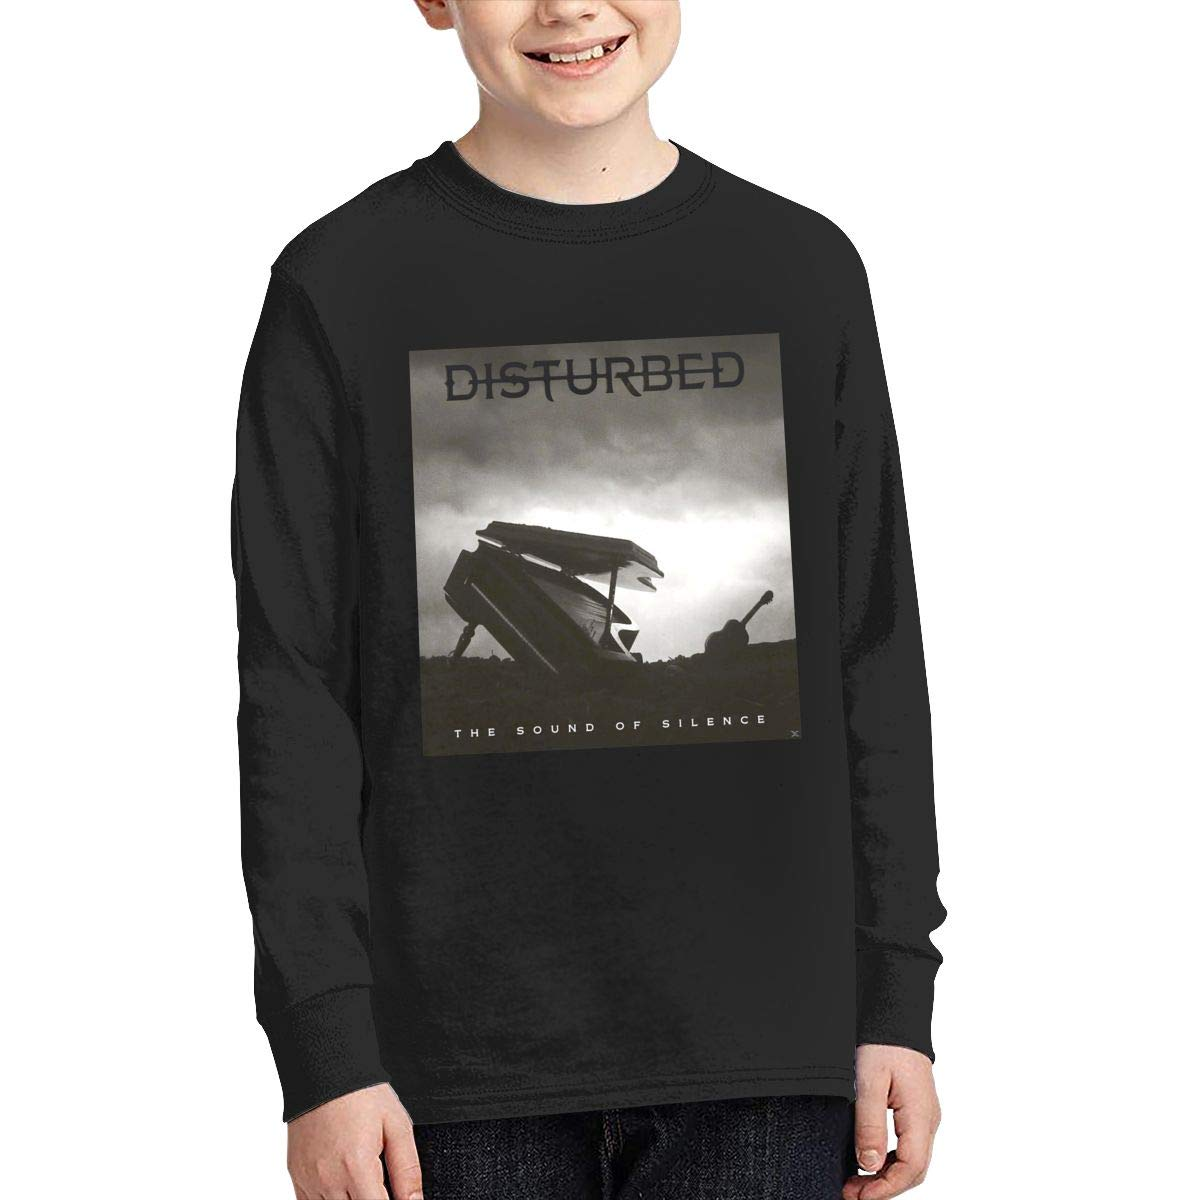 MichaelHazzard Disturbed Tour 2019 Youth Comfortable Long Sleeve Crewneck Tee T-Shirt for Boys and Girls